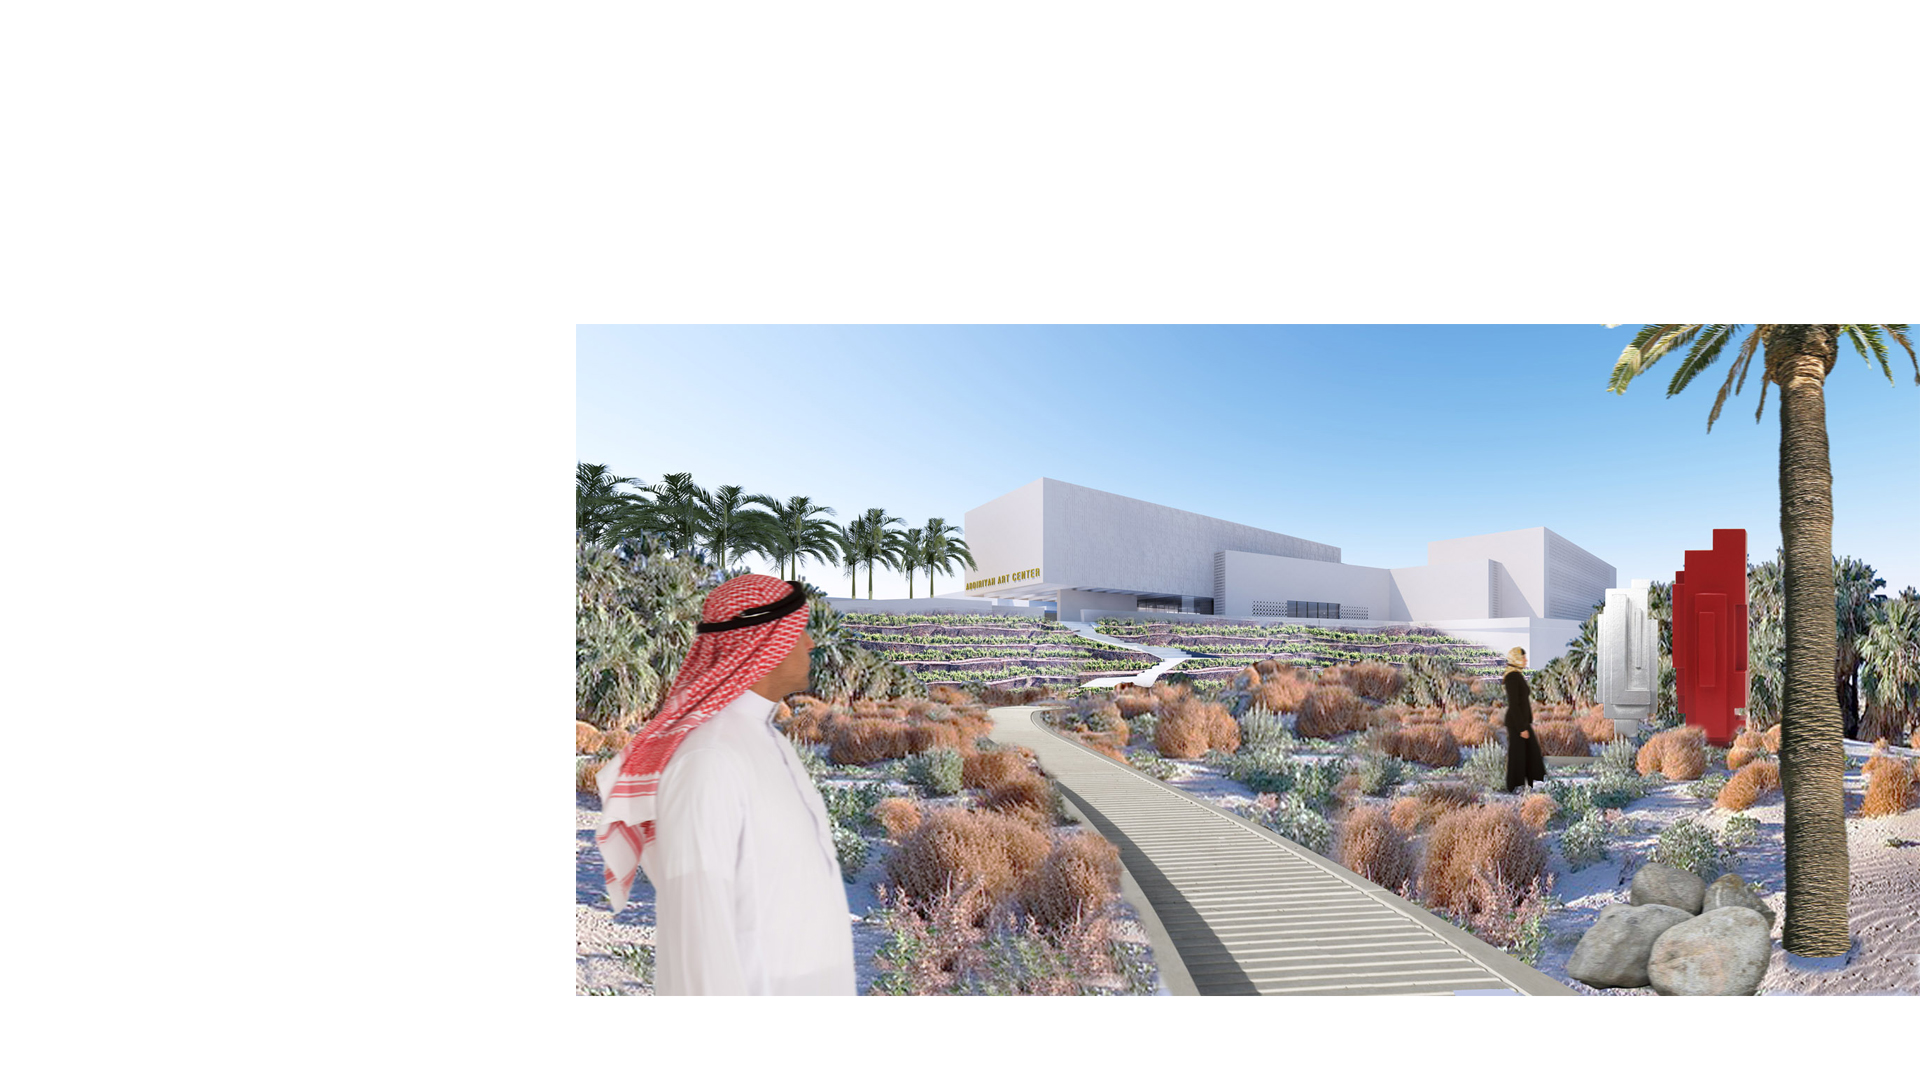 3D composite render of the Addiriyah Arts Centre and Teaching Academy from the east seen in its landscape setting